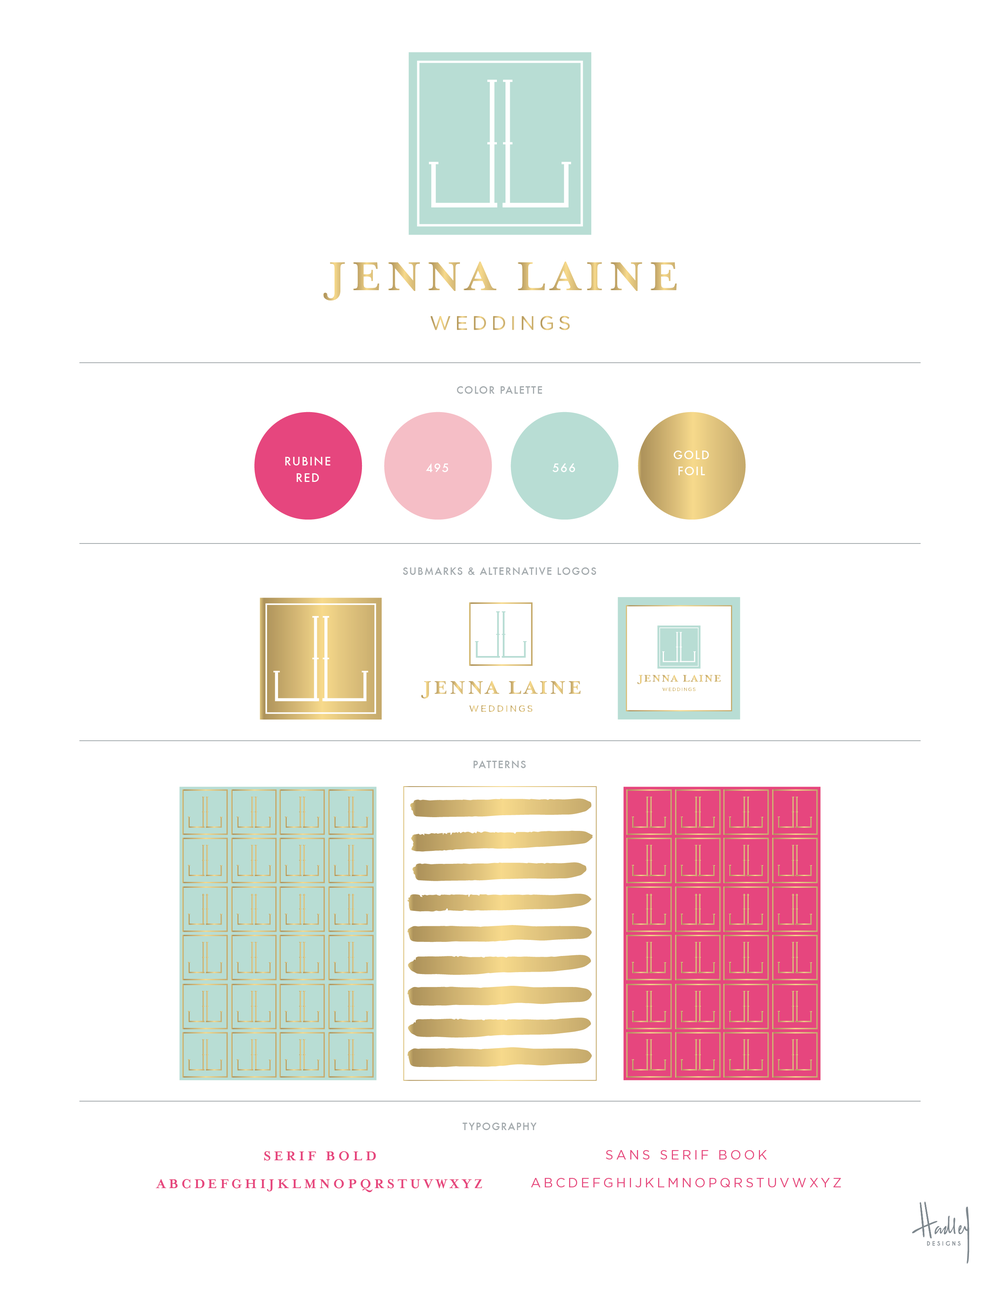 We launched the new name and branding for Jenna Laine Weddings this week! Jenna is a wedding coordinator and event designer located in Fairhope. Her office and shop is adorable (just like herself and her team). I was immediately impressed by her passion, organizational skills, and her overall entrepreneurial spirit. You can tell she is good at what she does. Period. Jenna realizes the importance of investing in her business, and I was honored that she chose me to help rename and rebrand her business. I love the video below, which is another example of the recent marketing investments she has made.